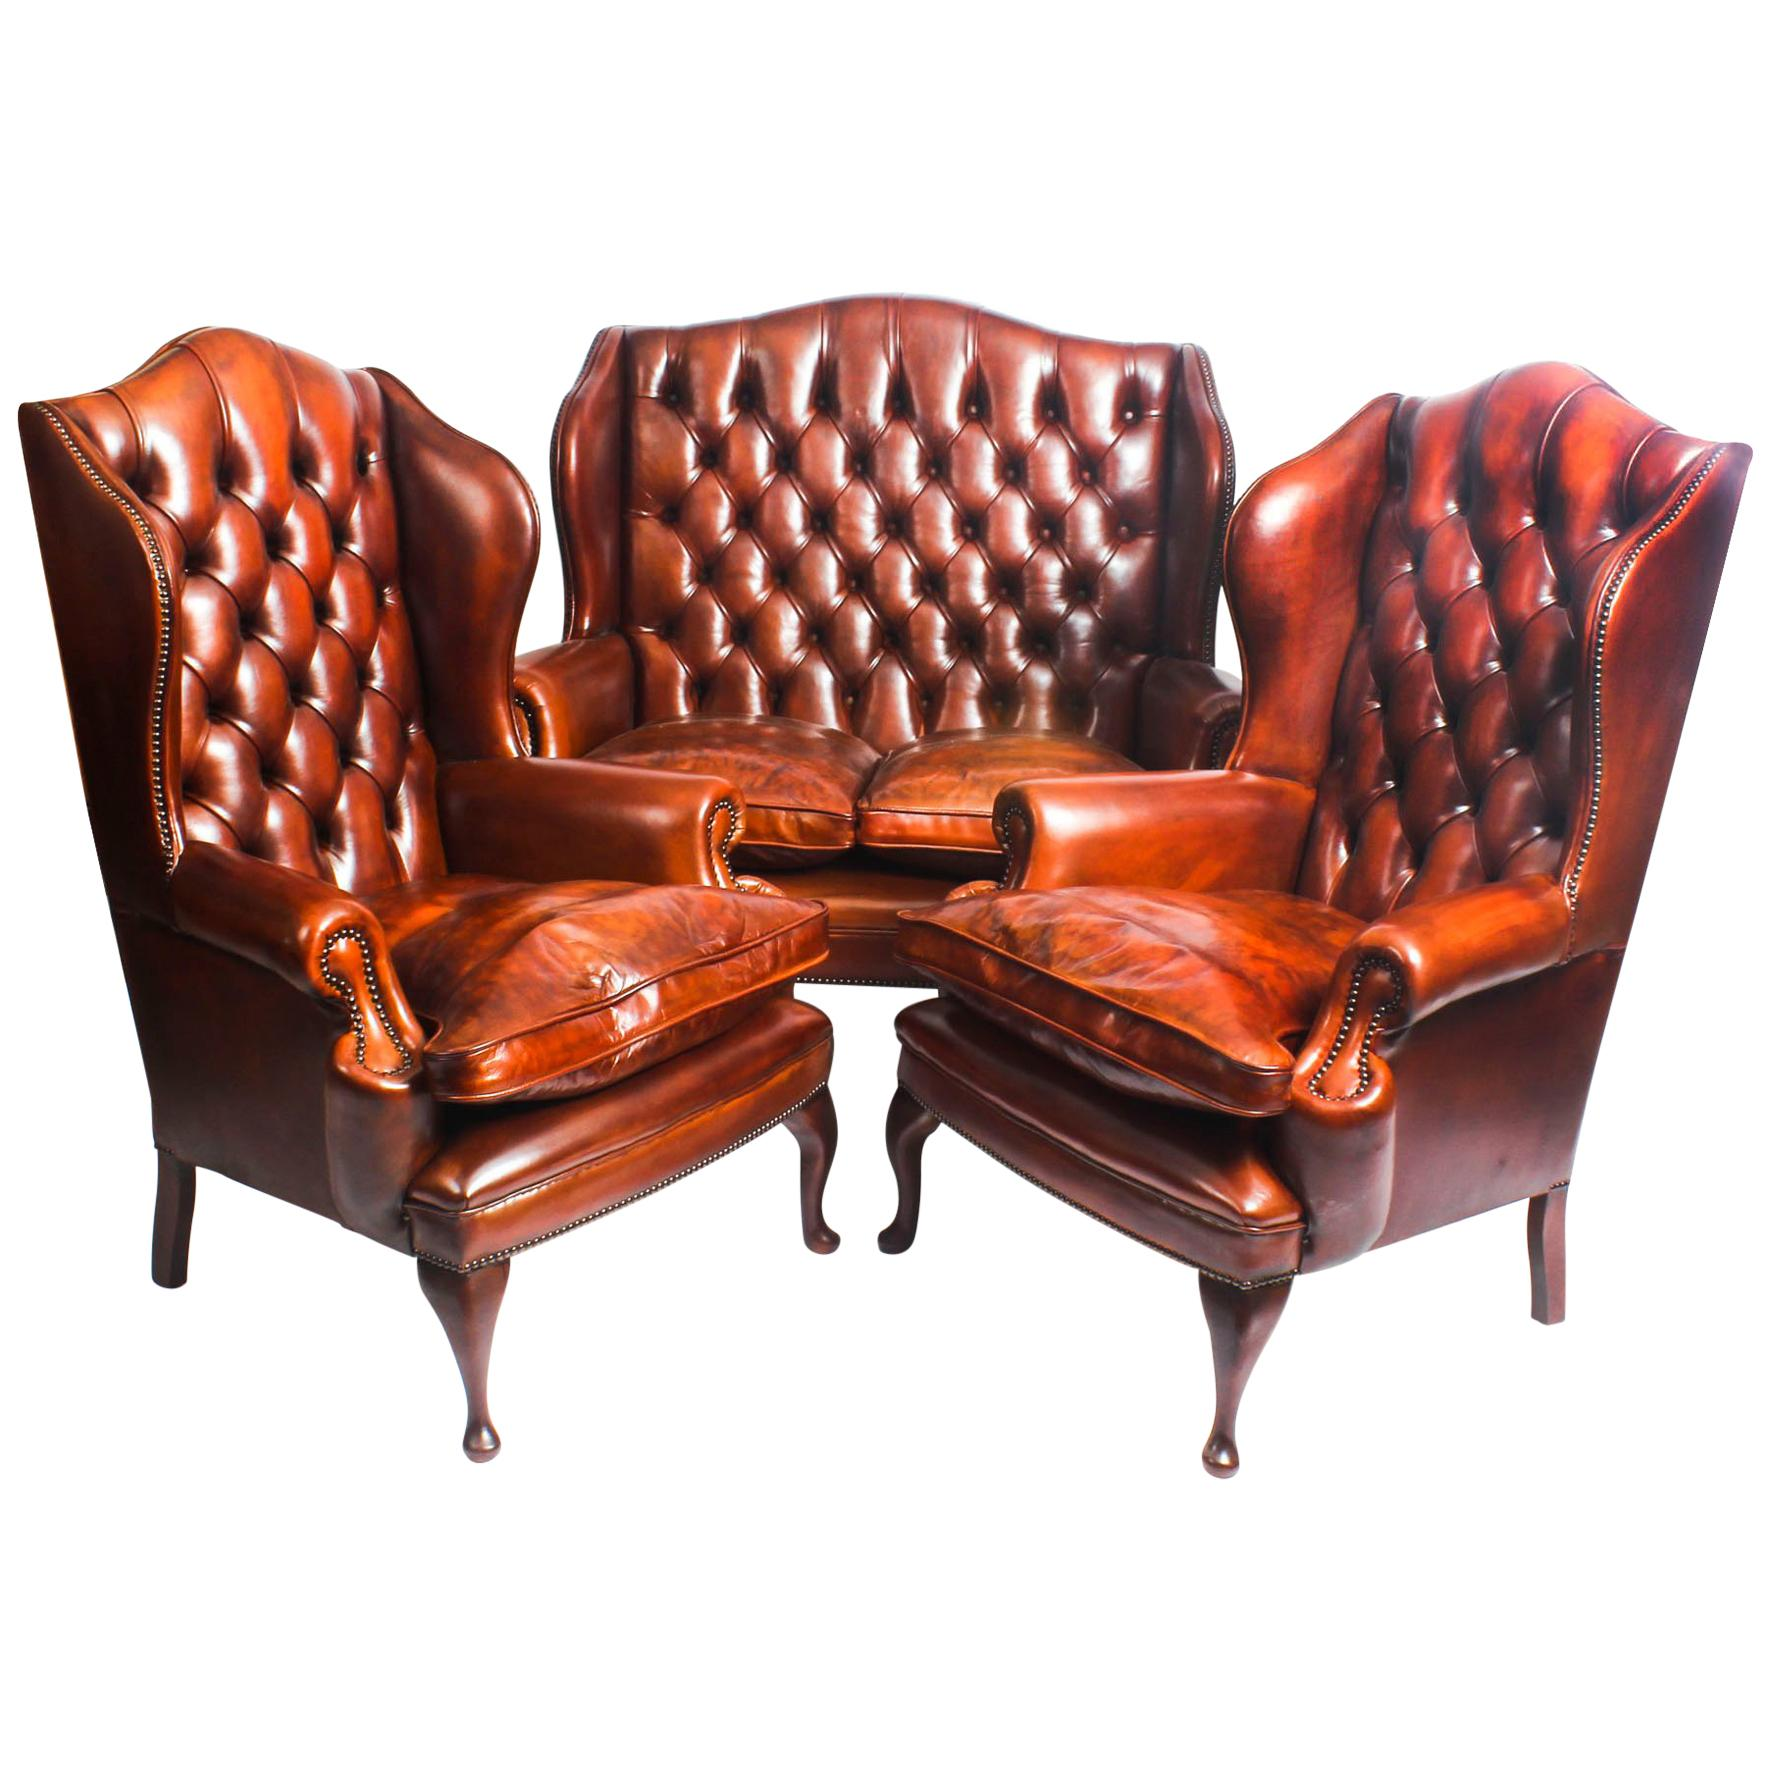 Exceptionnel English Leather Queen Anne Sofa And Pair Of Armchairs Burnt Amber